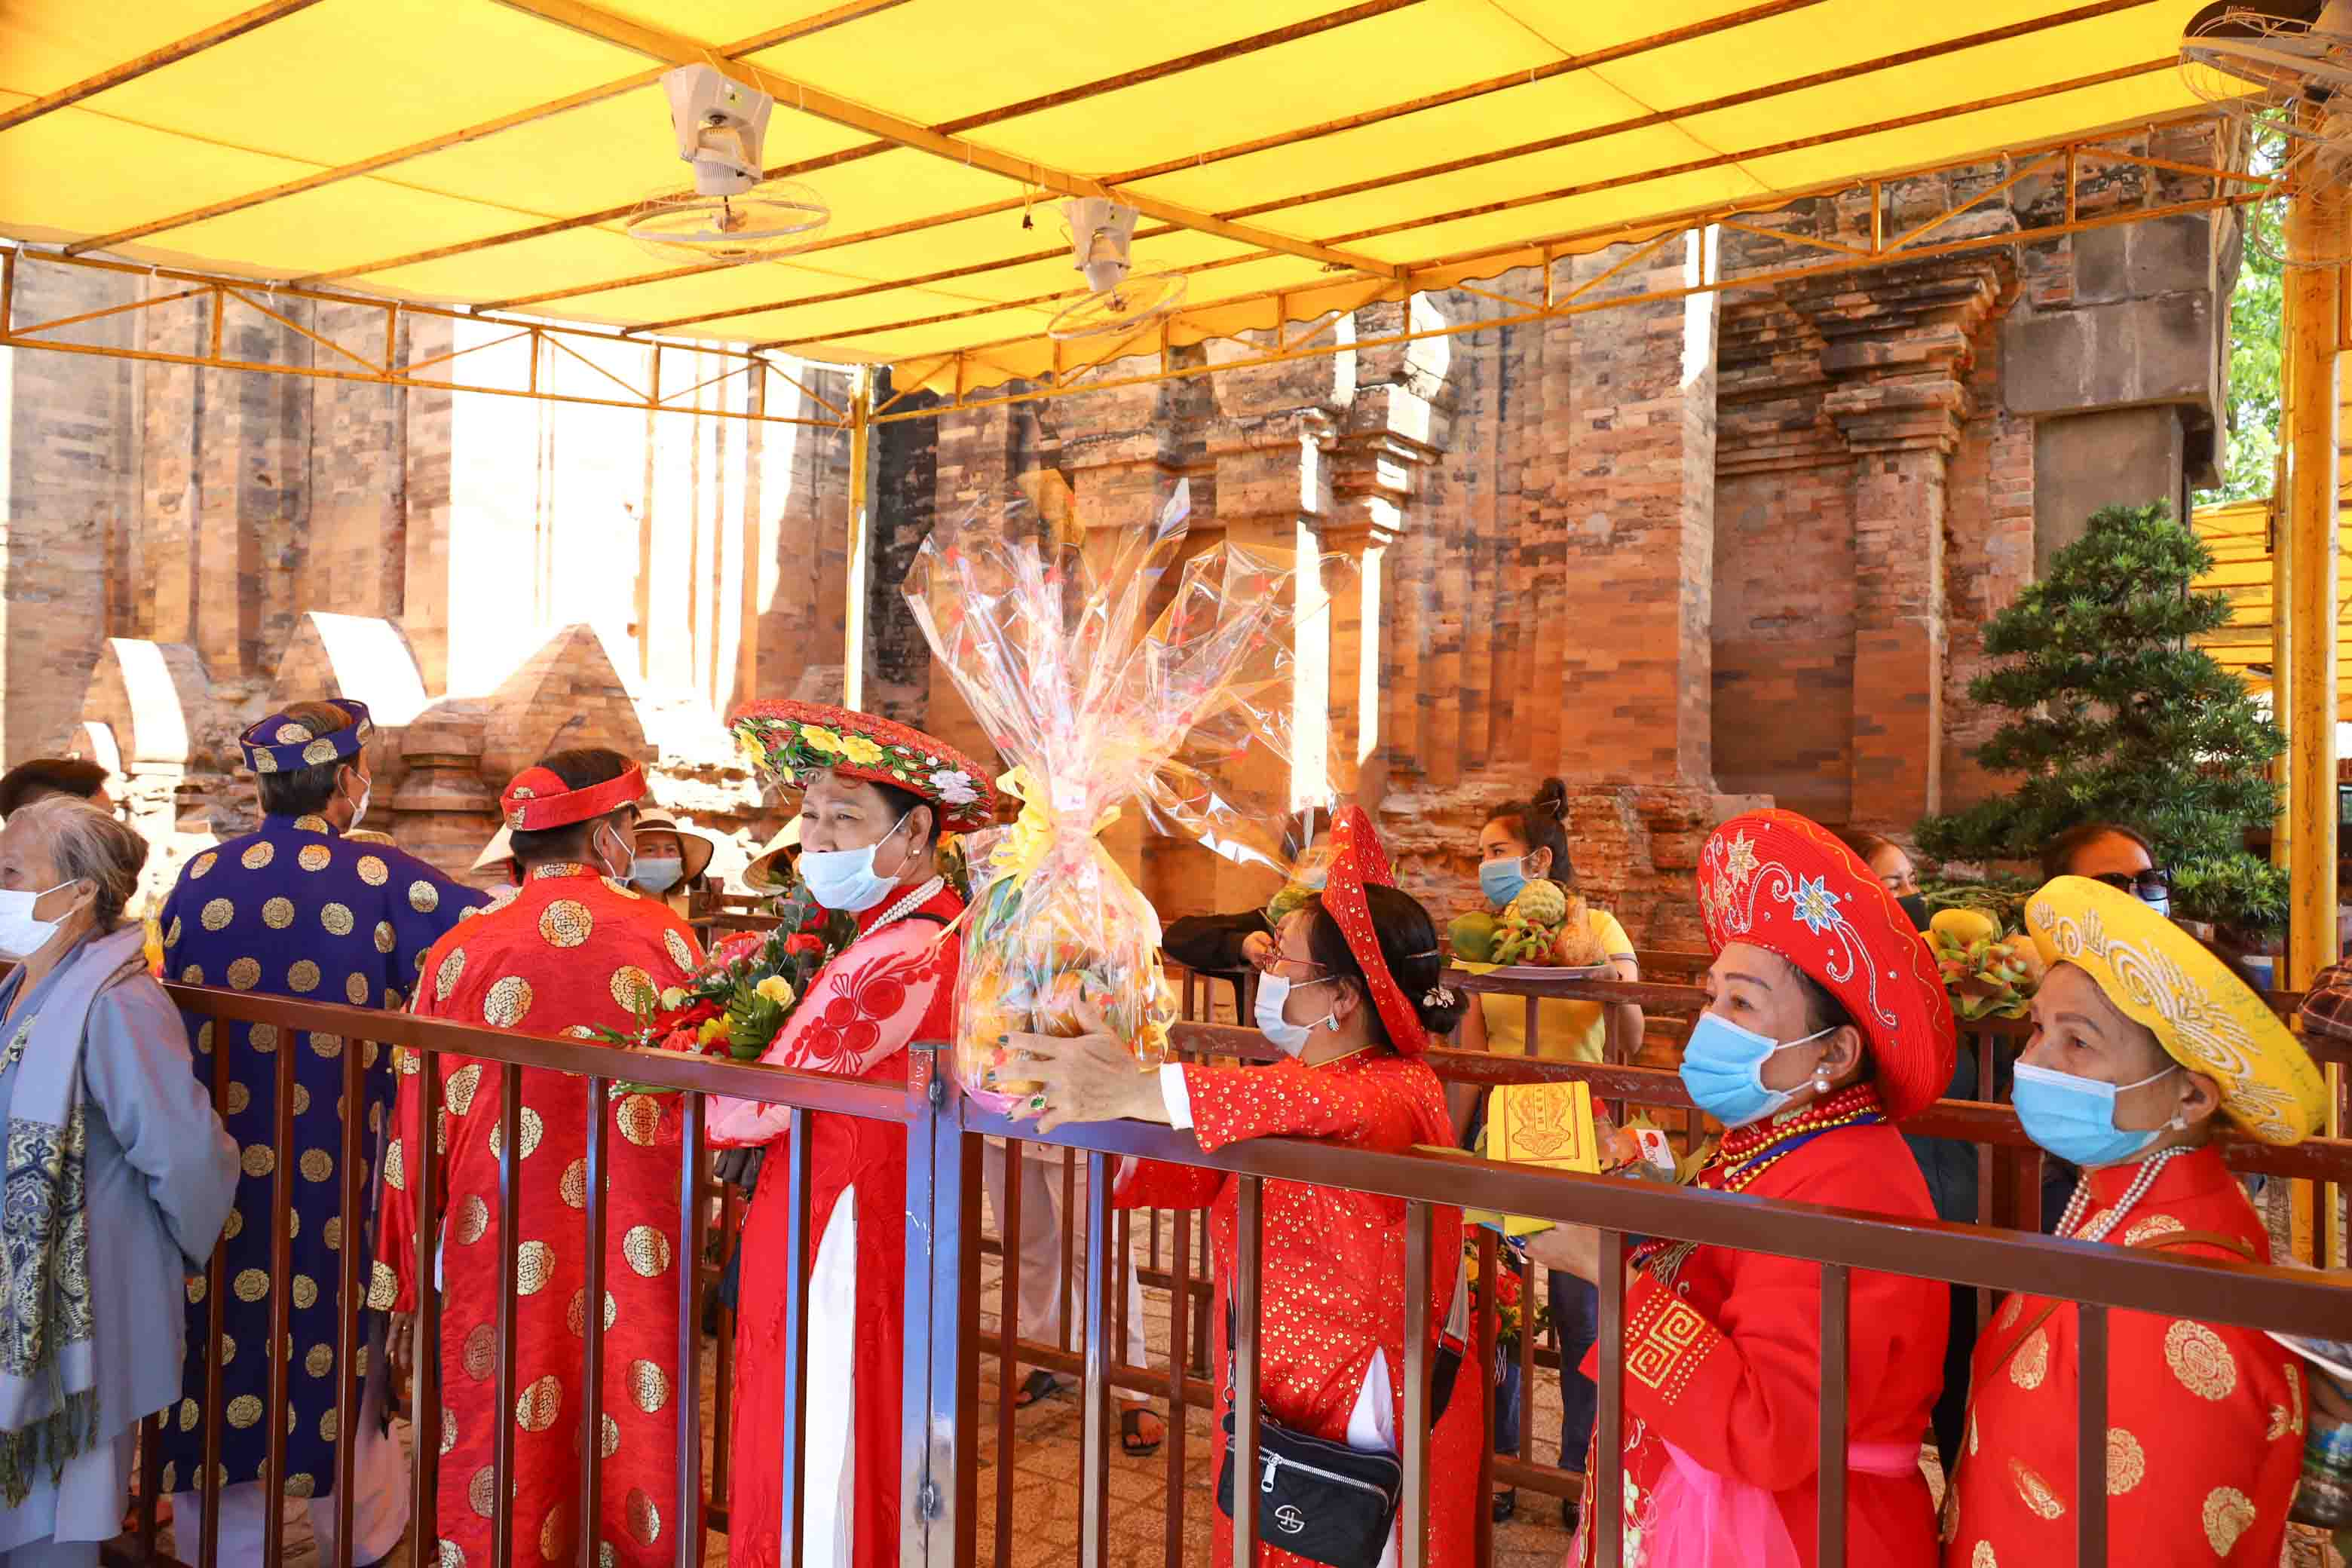 Pilgrims waiting to offer incense to the Holy Mother